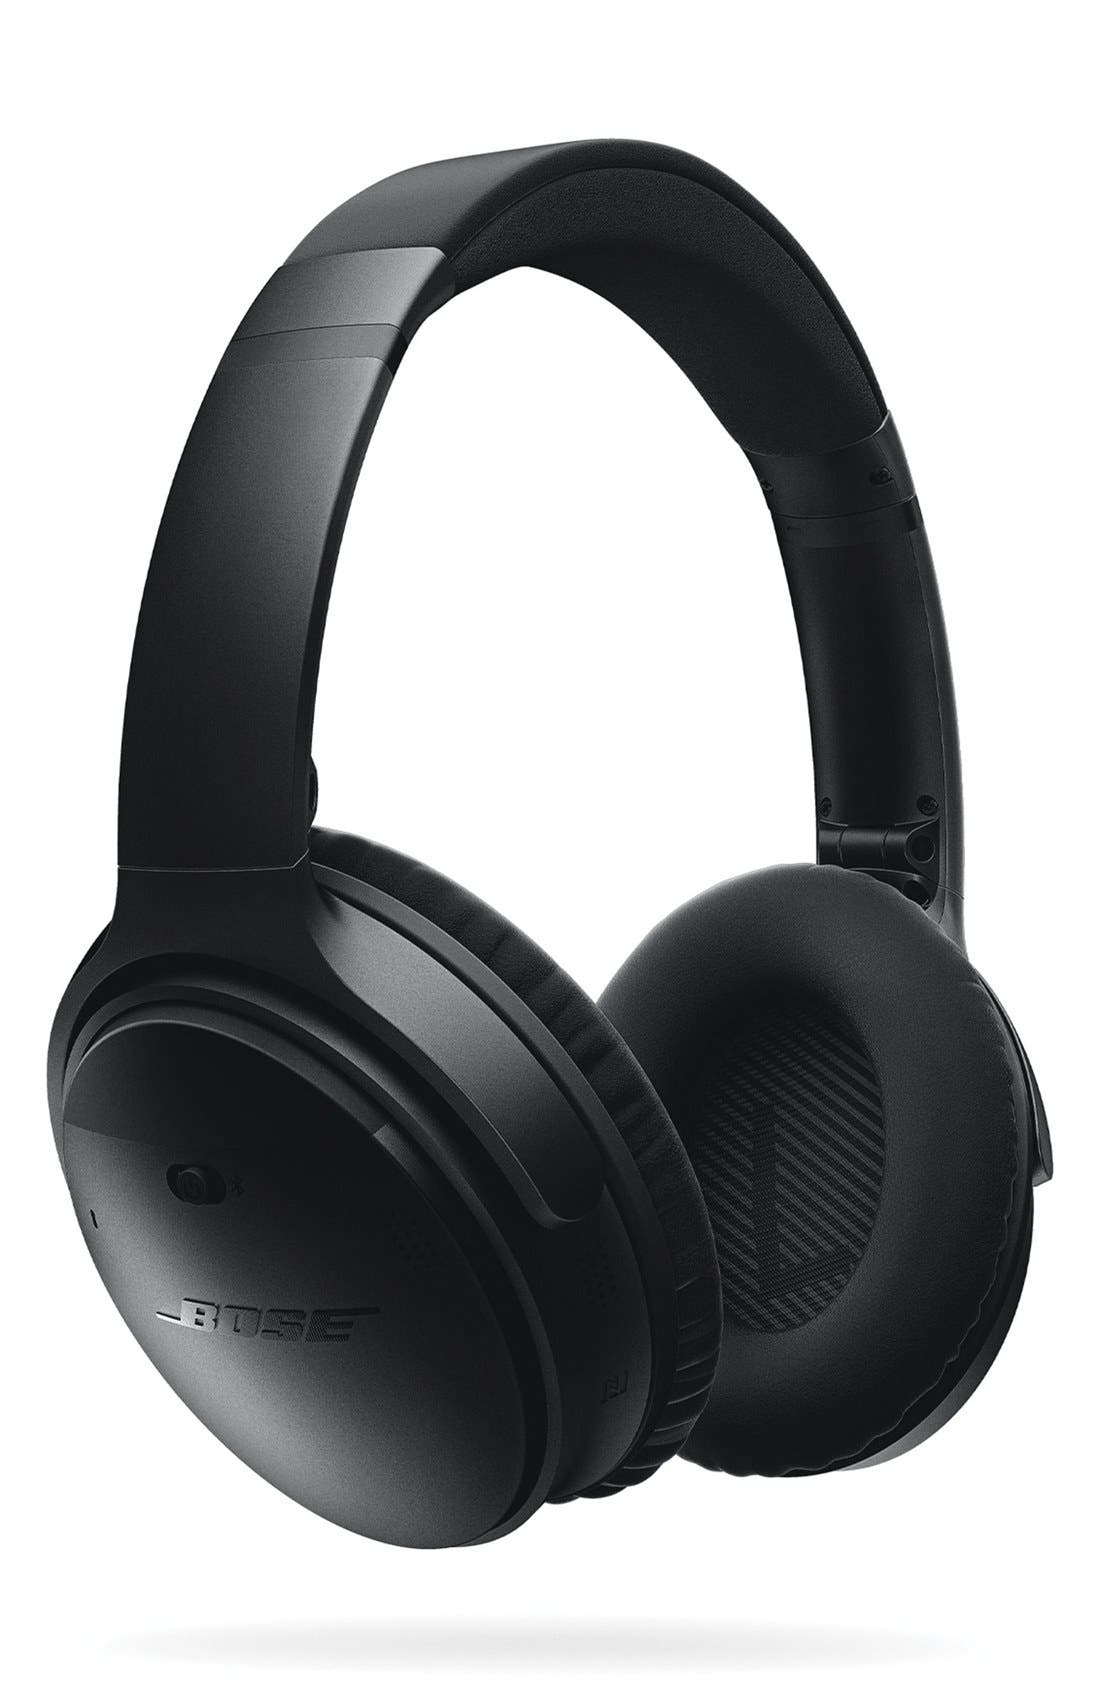 Main Image - Bose® QuietComfort® 35 Acoustic Noise Cancelling® Bluetooth® Headphones